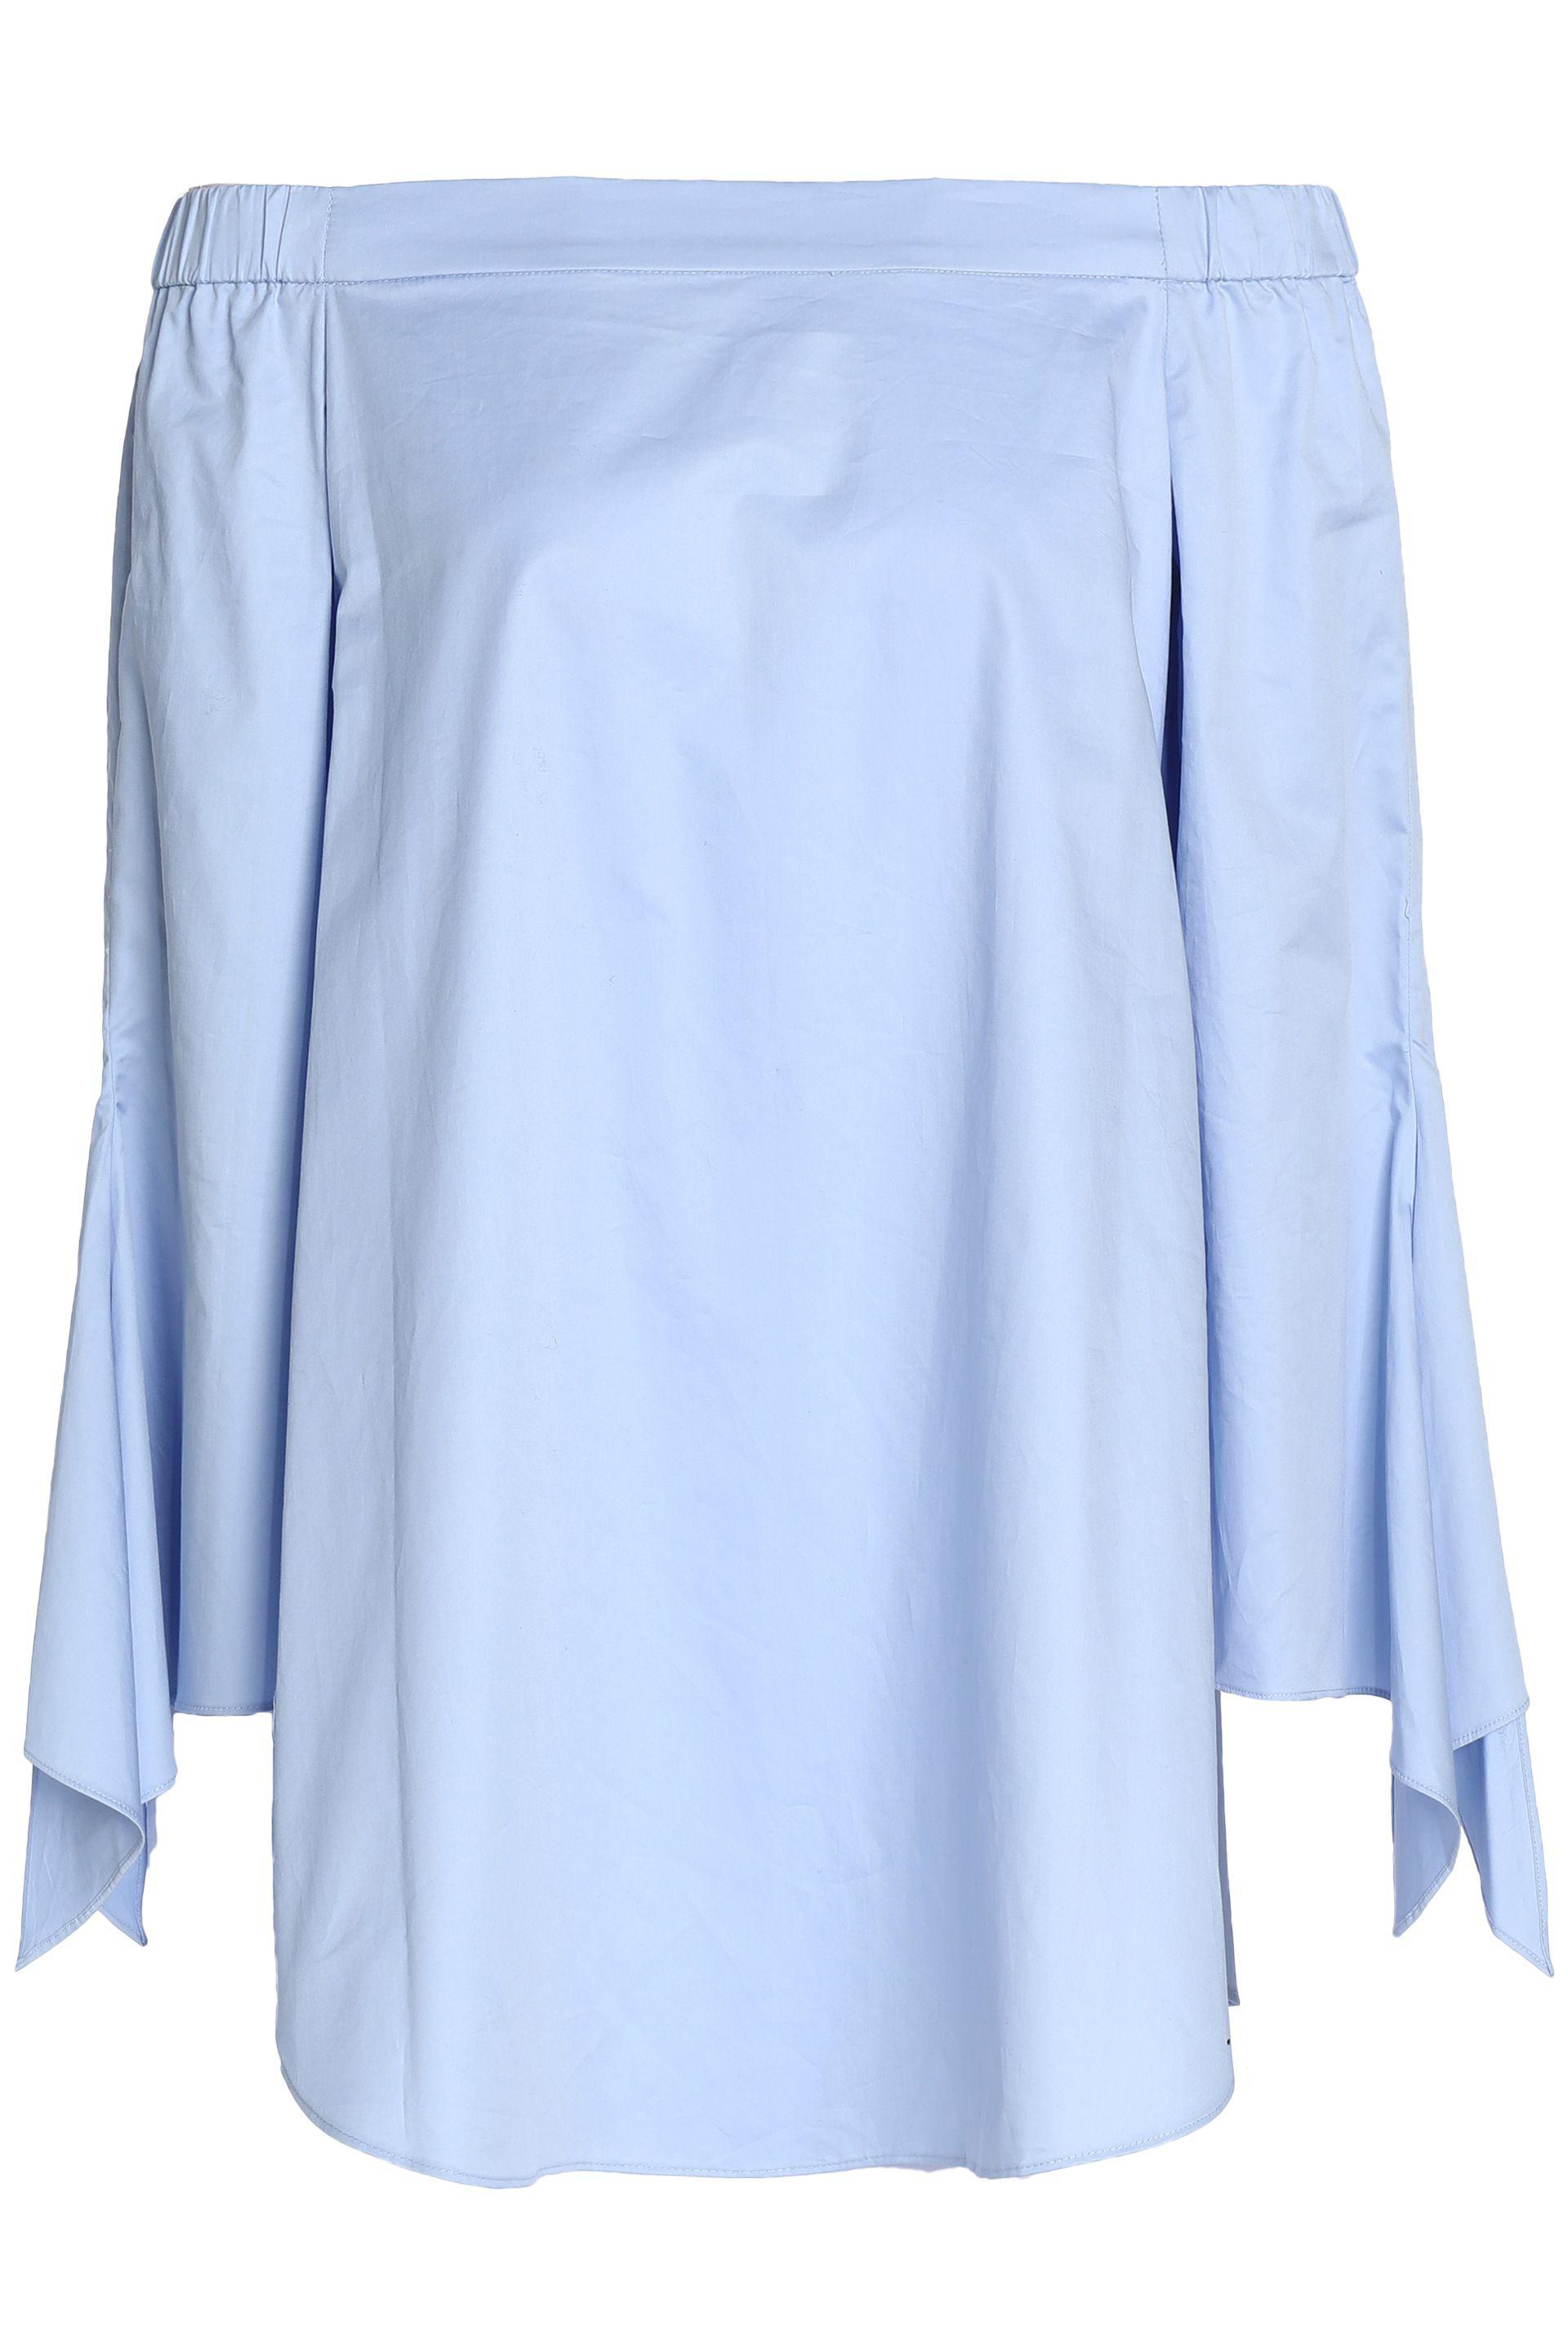 Tibi Woman Off-the-shoulder Striped Cotton-poplin Top Light Blue Size 4 Tibi Discount Cheap Online Clearance Low Cost Nk5qr